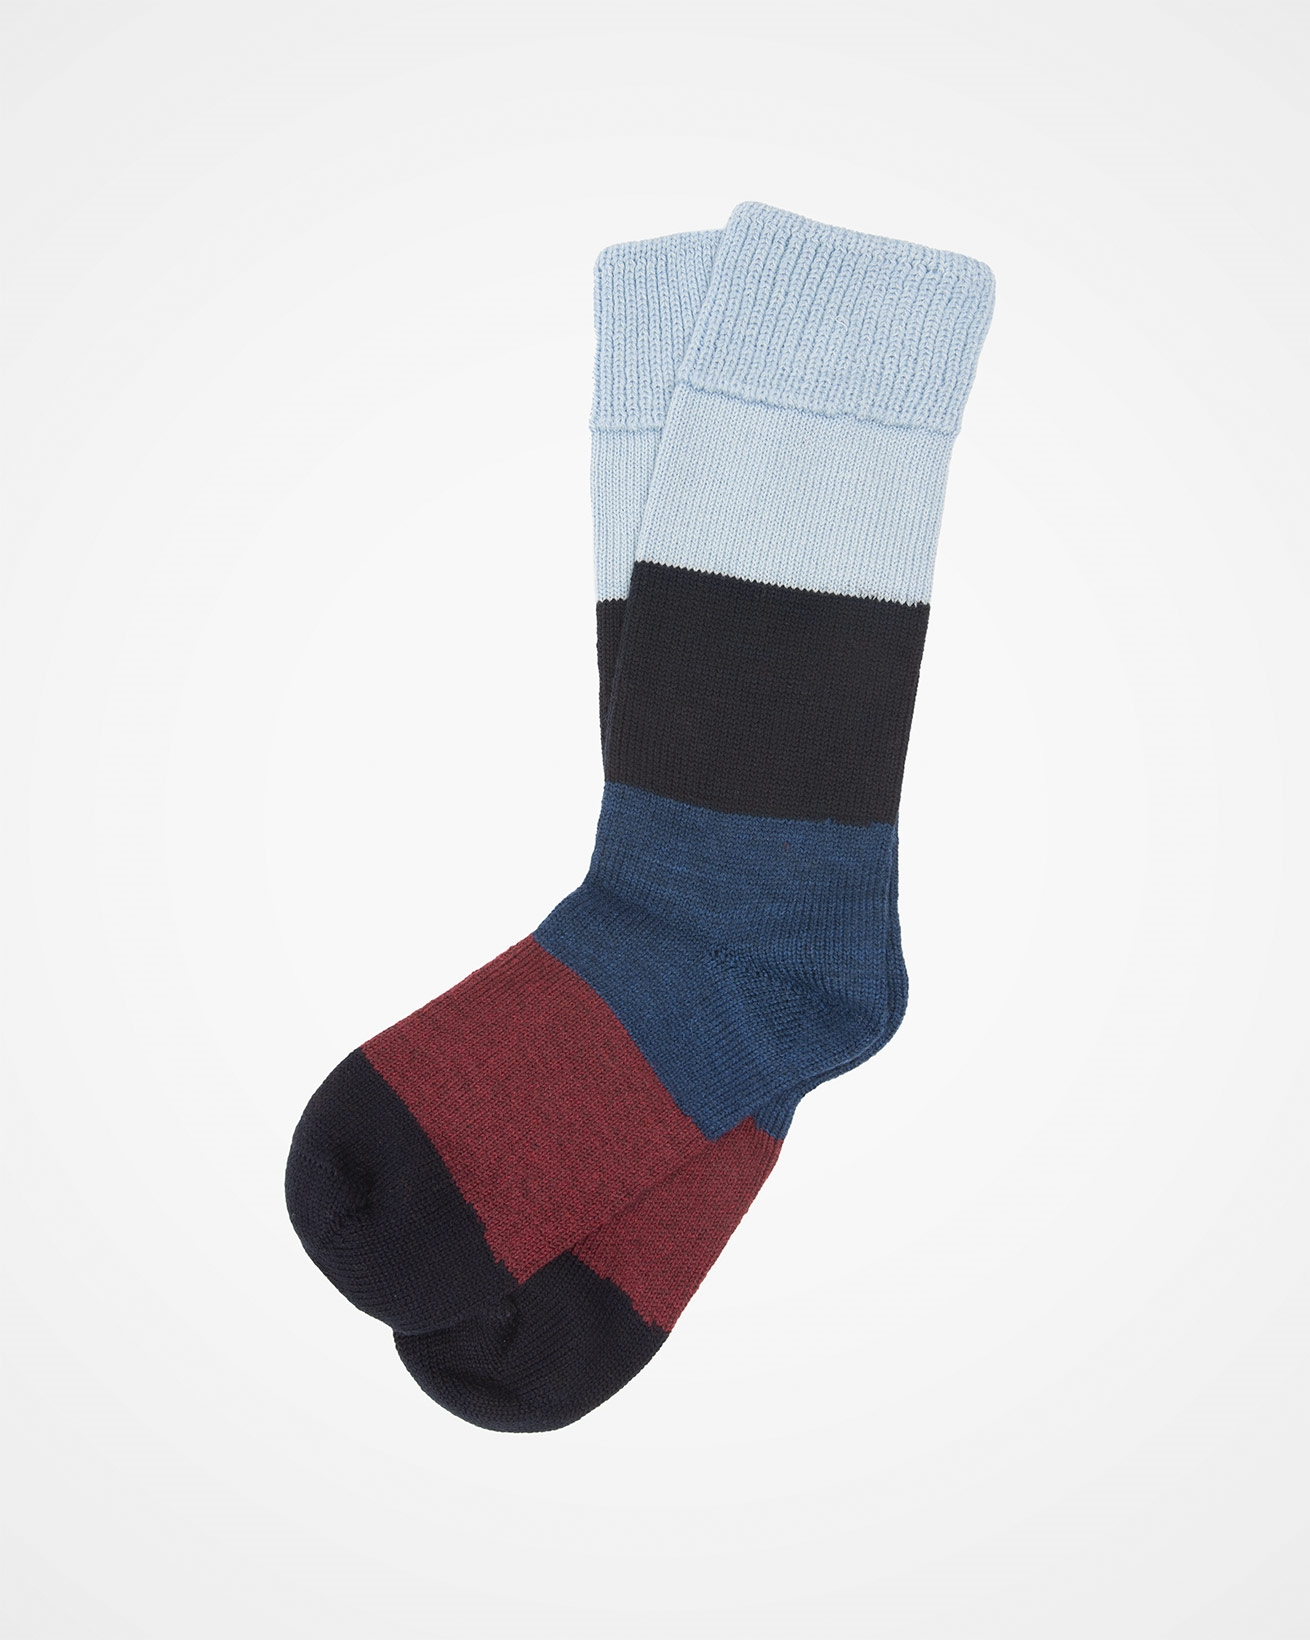 7760_mens-merino-cotton-colourblock-socks_vintage-blue_flat.jpg